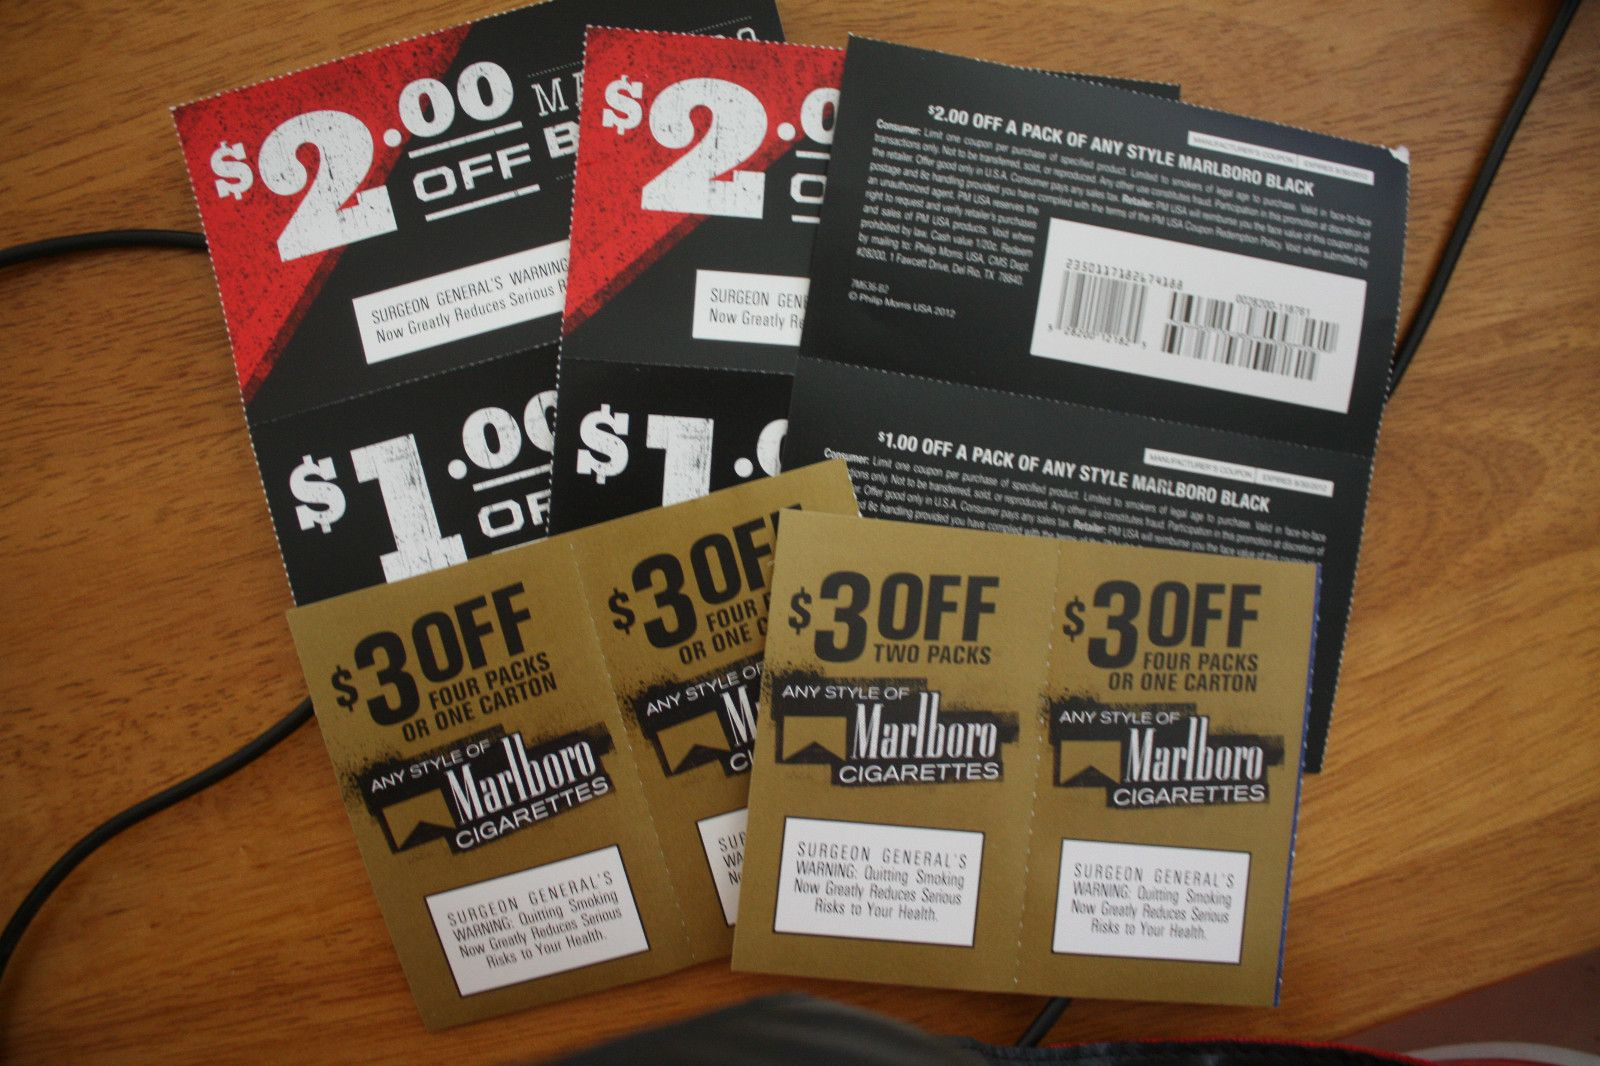 Pin On Cigarette Coupons - Free Printable Cigarette Coupons